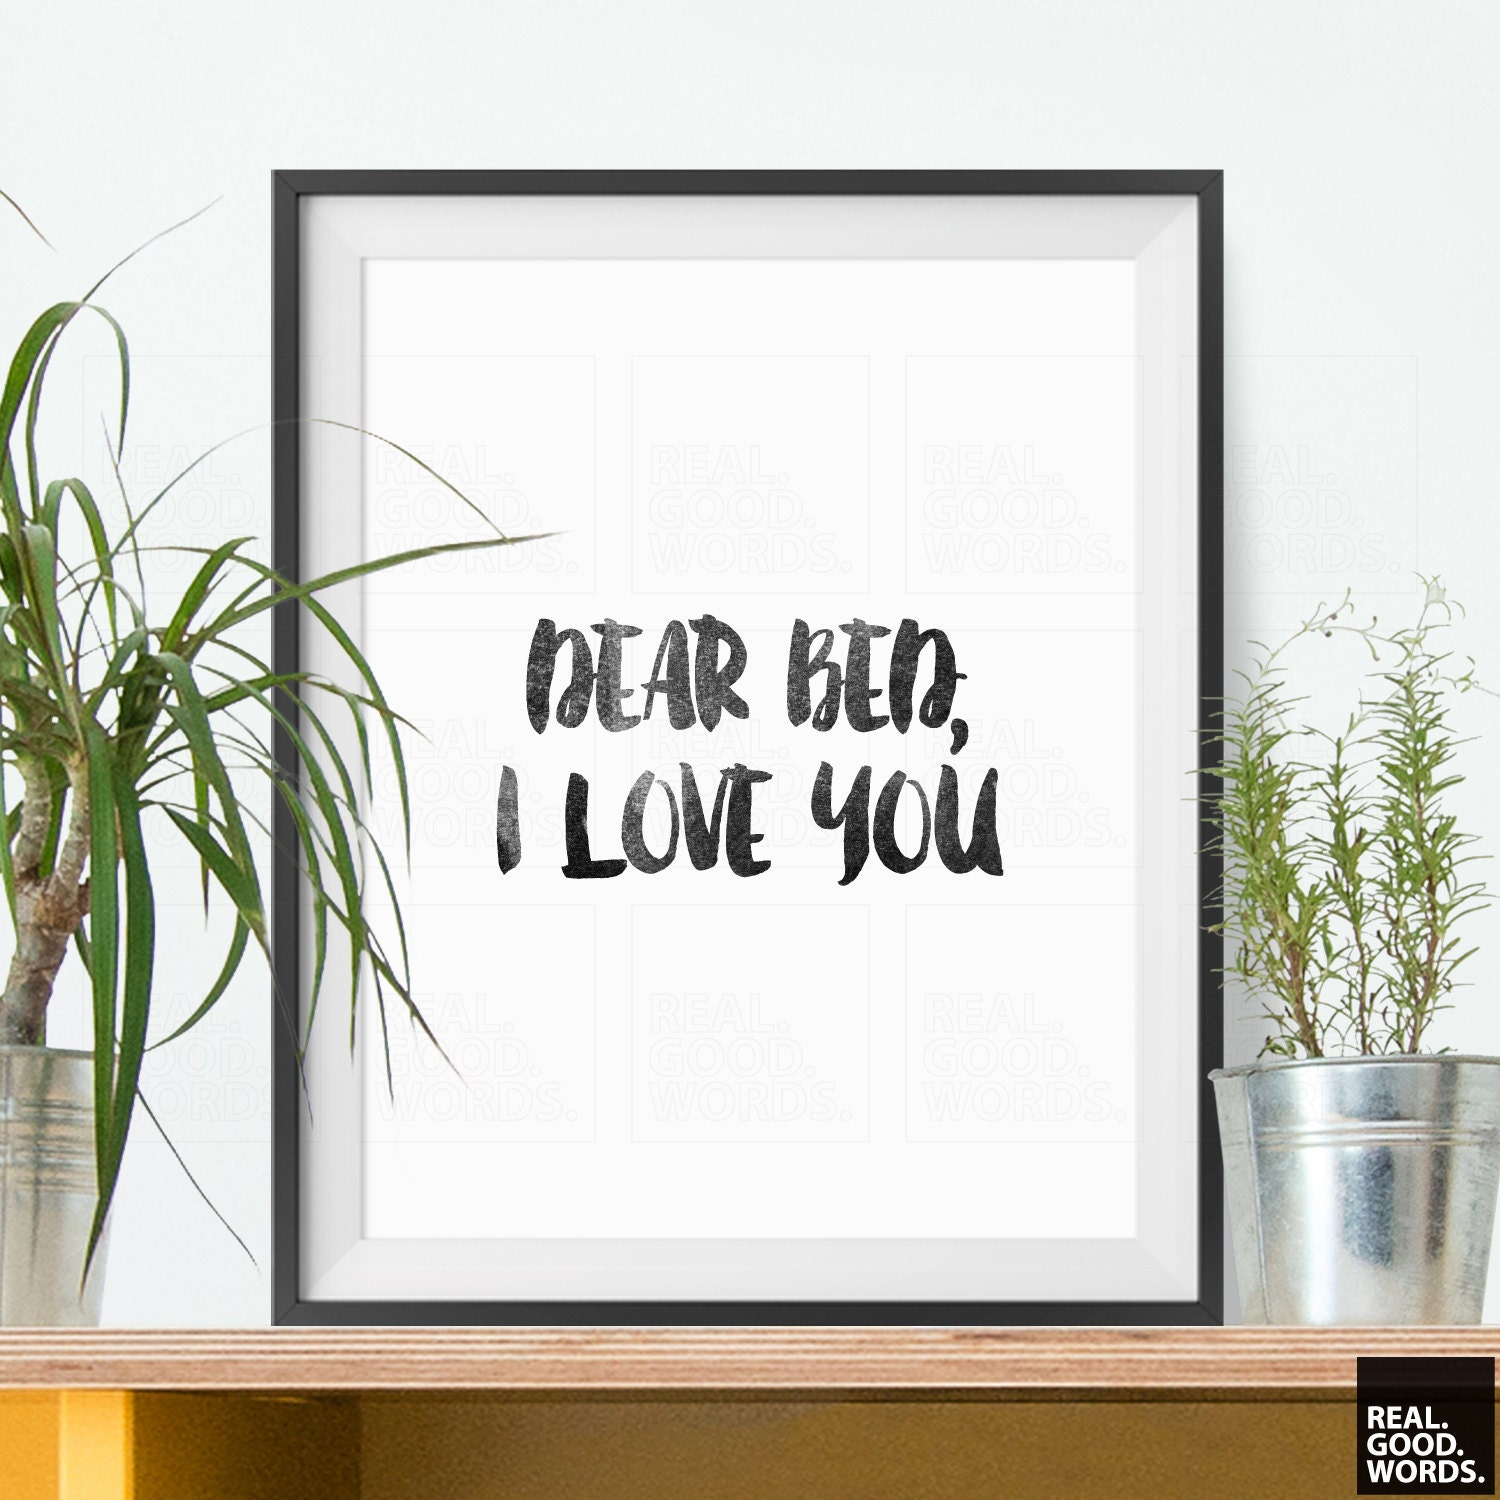 Bedroom Decor Gift For Friend Humorous Art Dear Bed I Love You